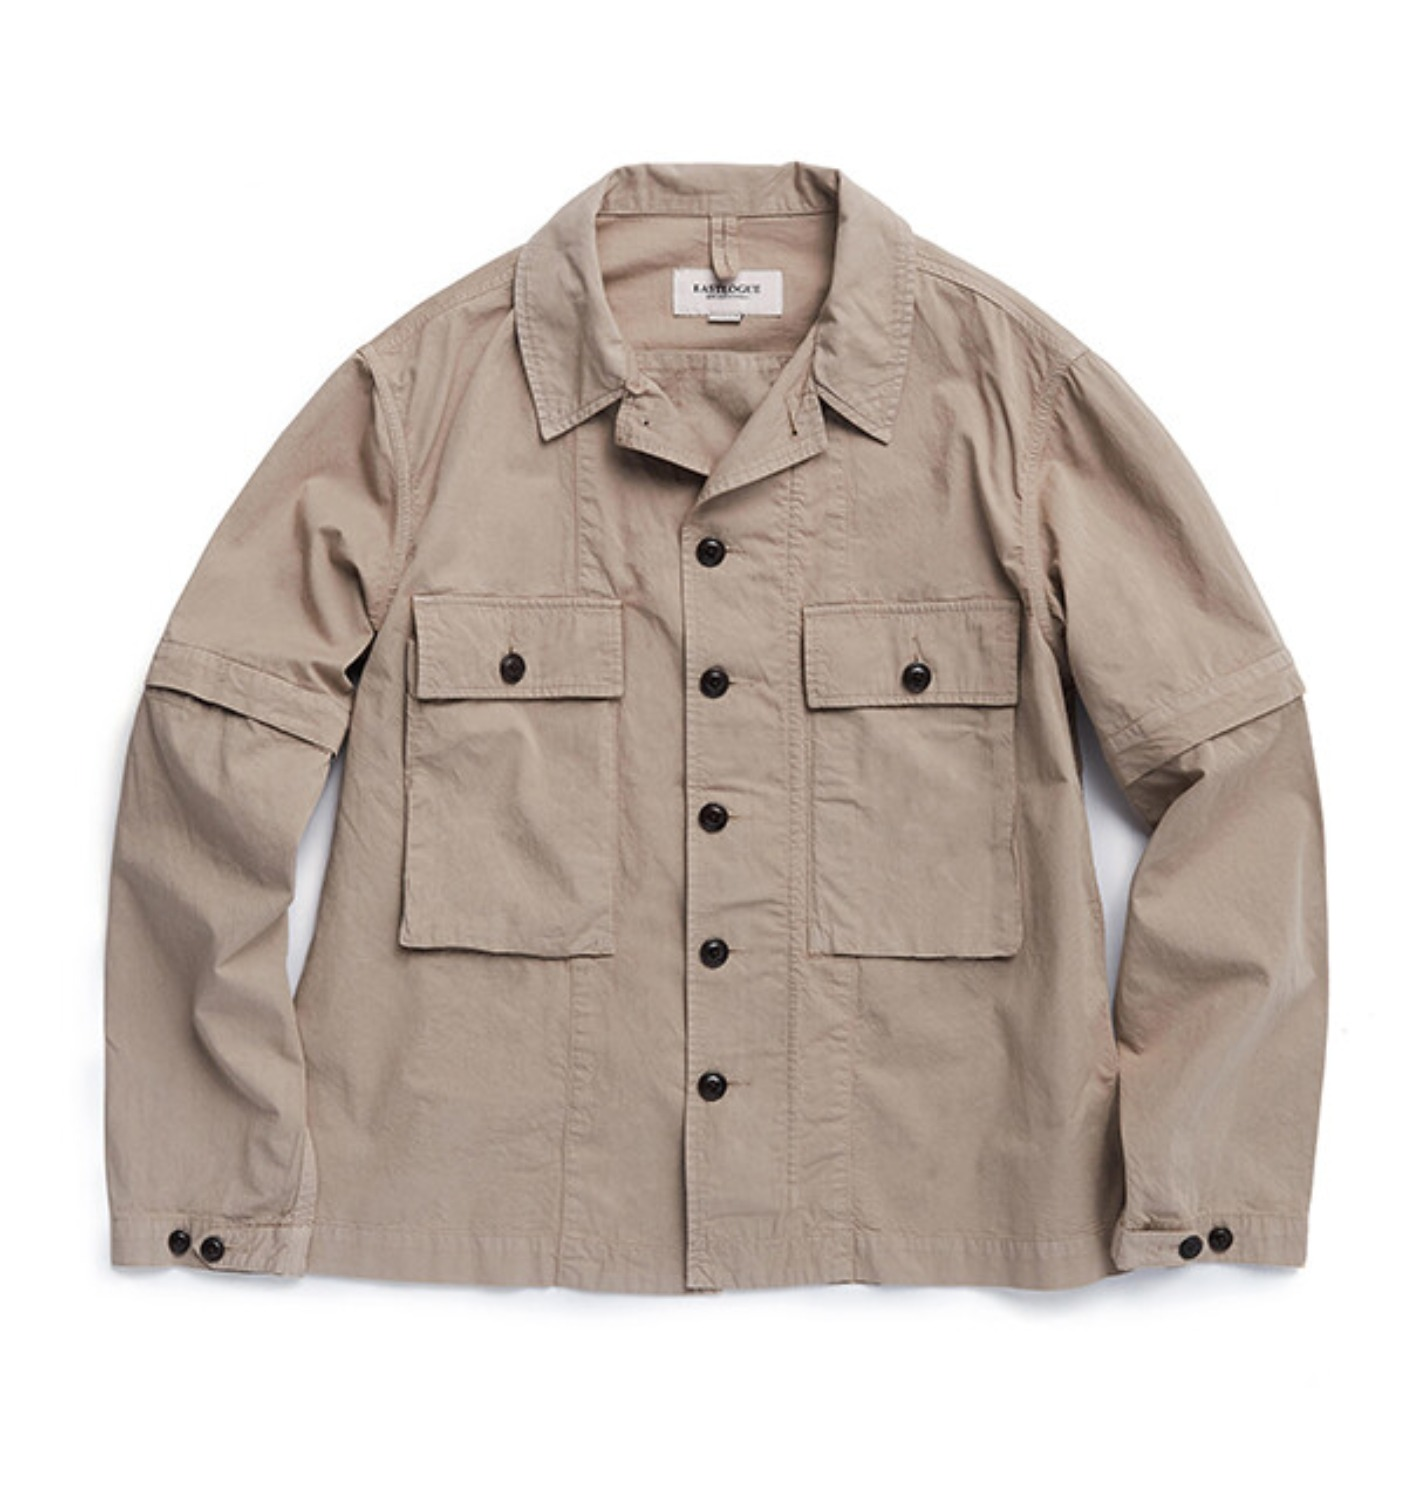 KW M43 JACKET DYED BEIGE